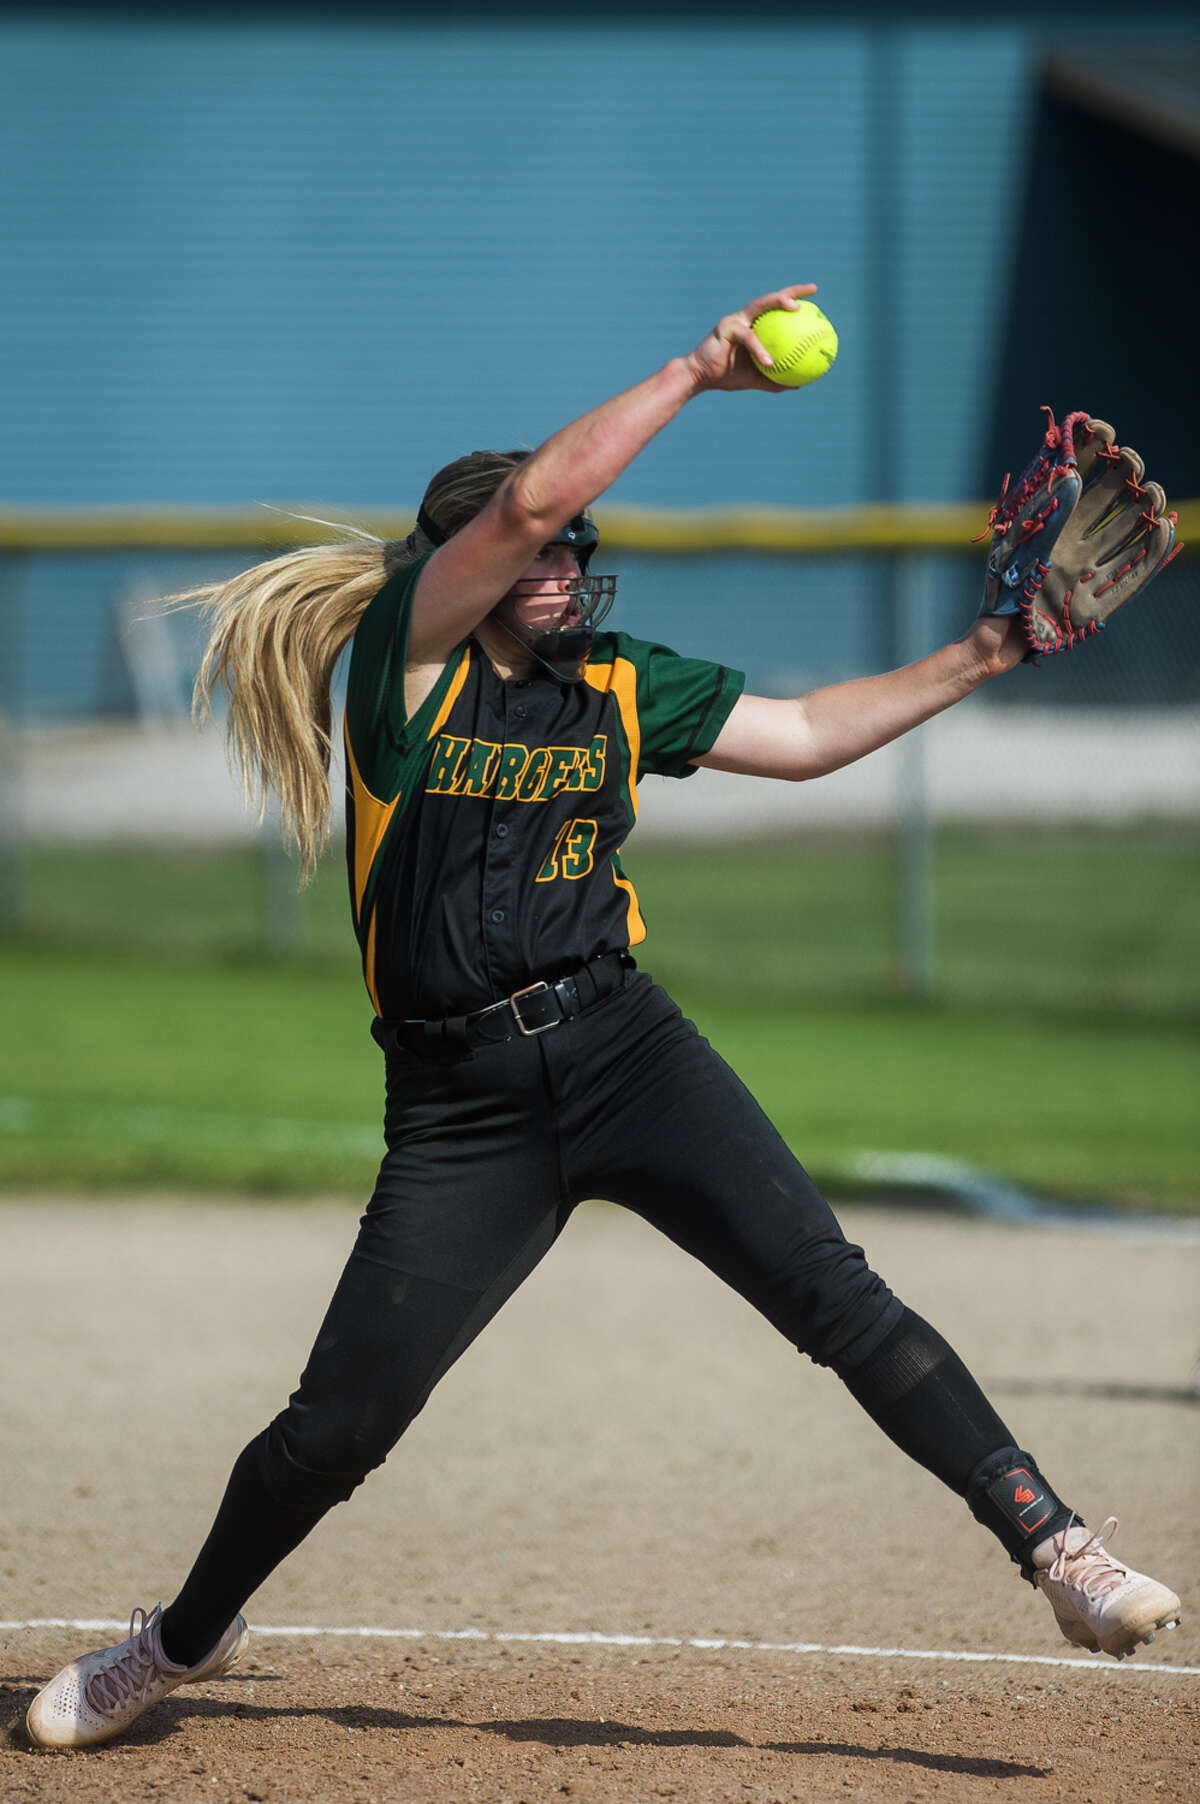 Dow's Delaney Belding pitches the ball during the Chargers' game against Midland Tuesday, May 18, 2021 at Midland High School. (Katy Kildee/kkildee@mdn.net)